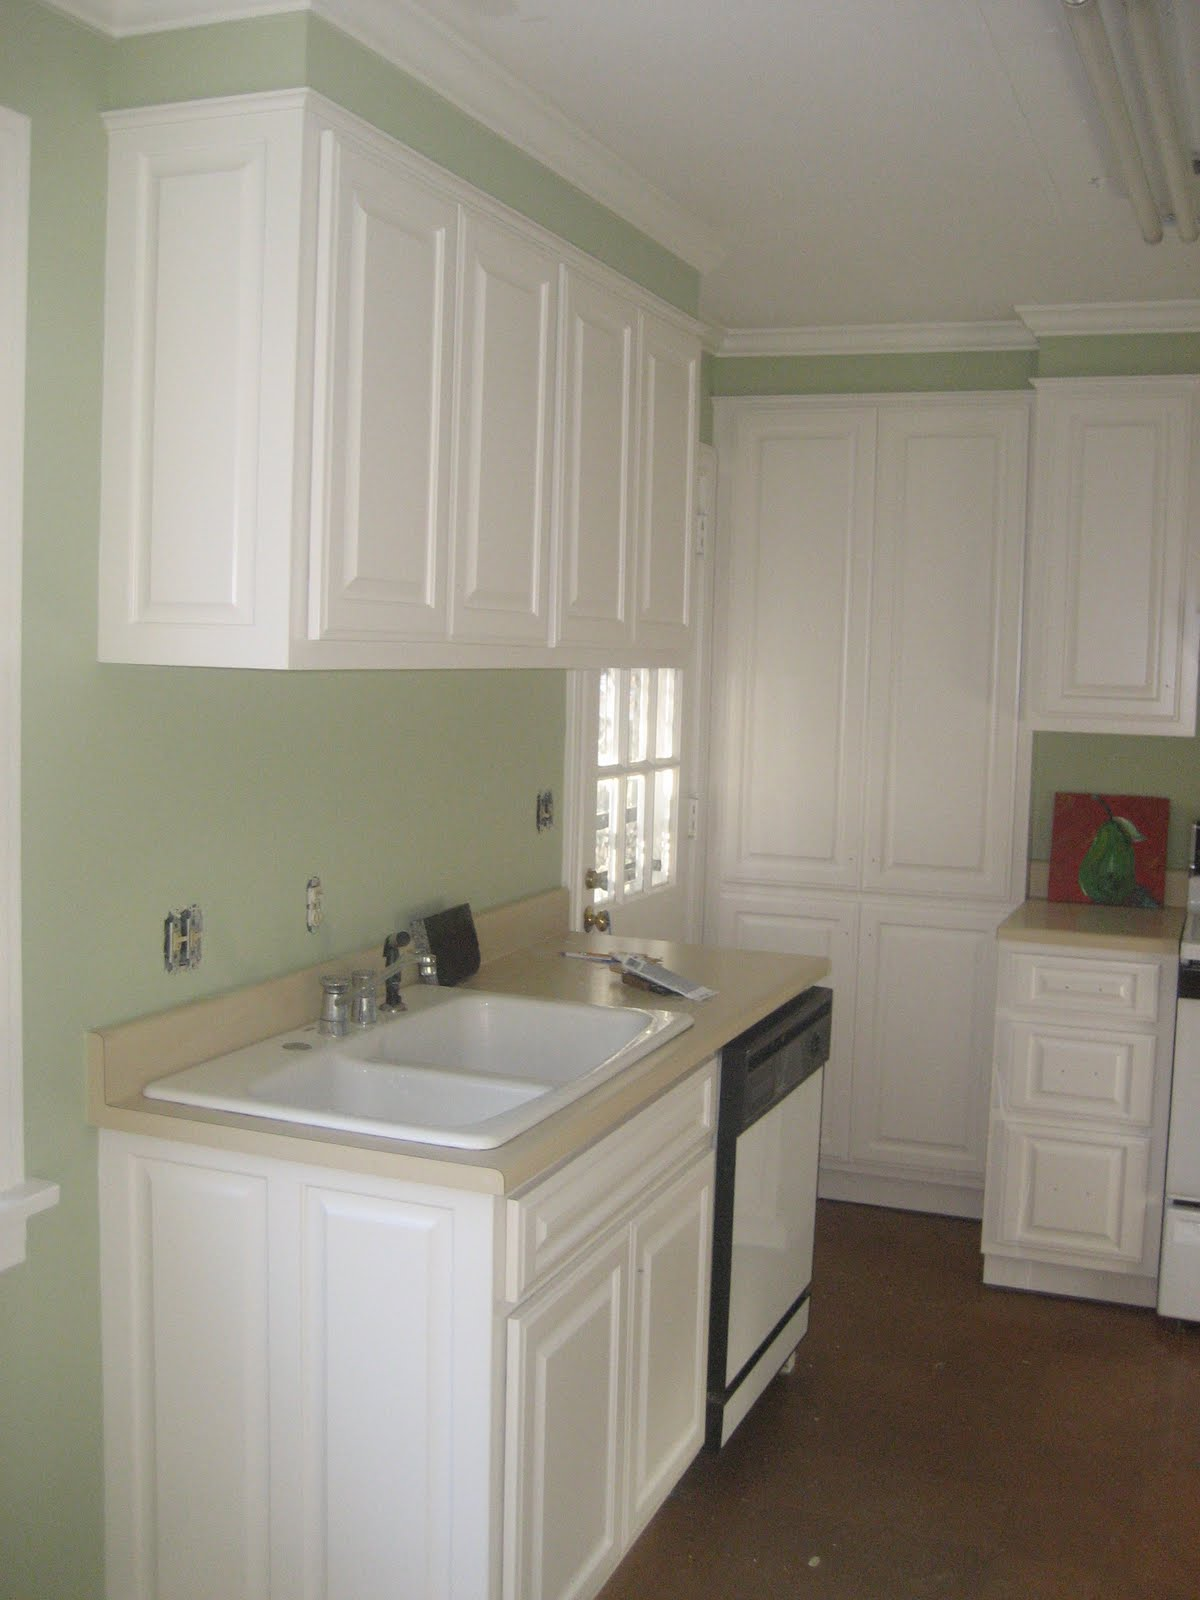 Apple Green Wall Paint Submited Images Pic2Fly